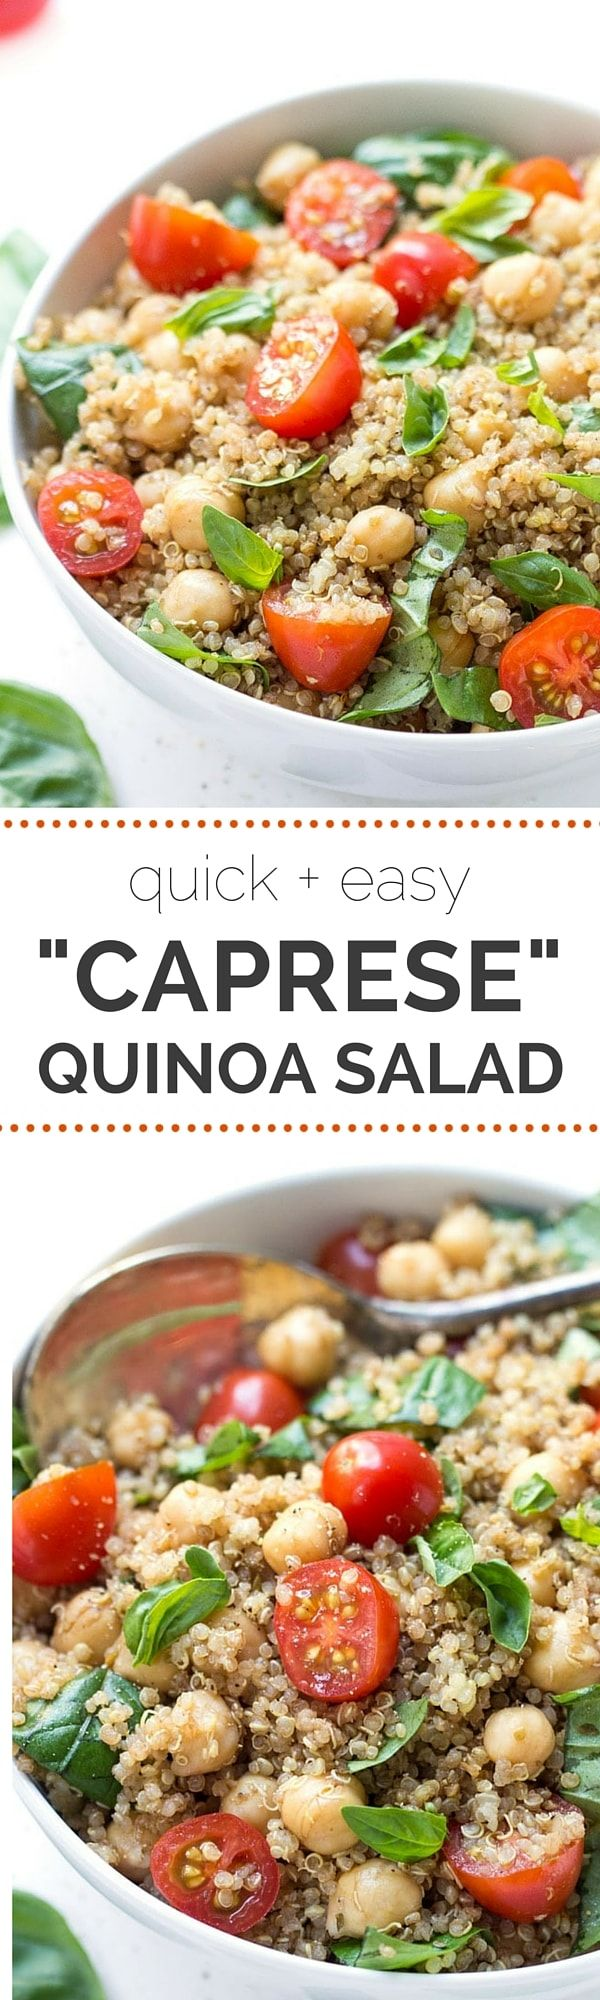 Caprese Quinoa Salad With Tomatoes, Basil And Chickpeas  Recipe On  Simplyquinoa €�